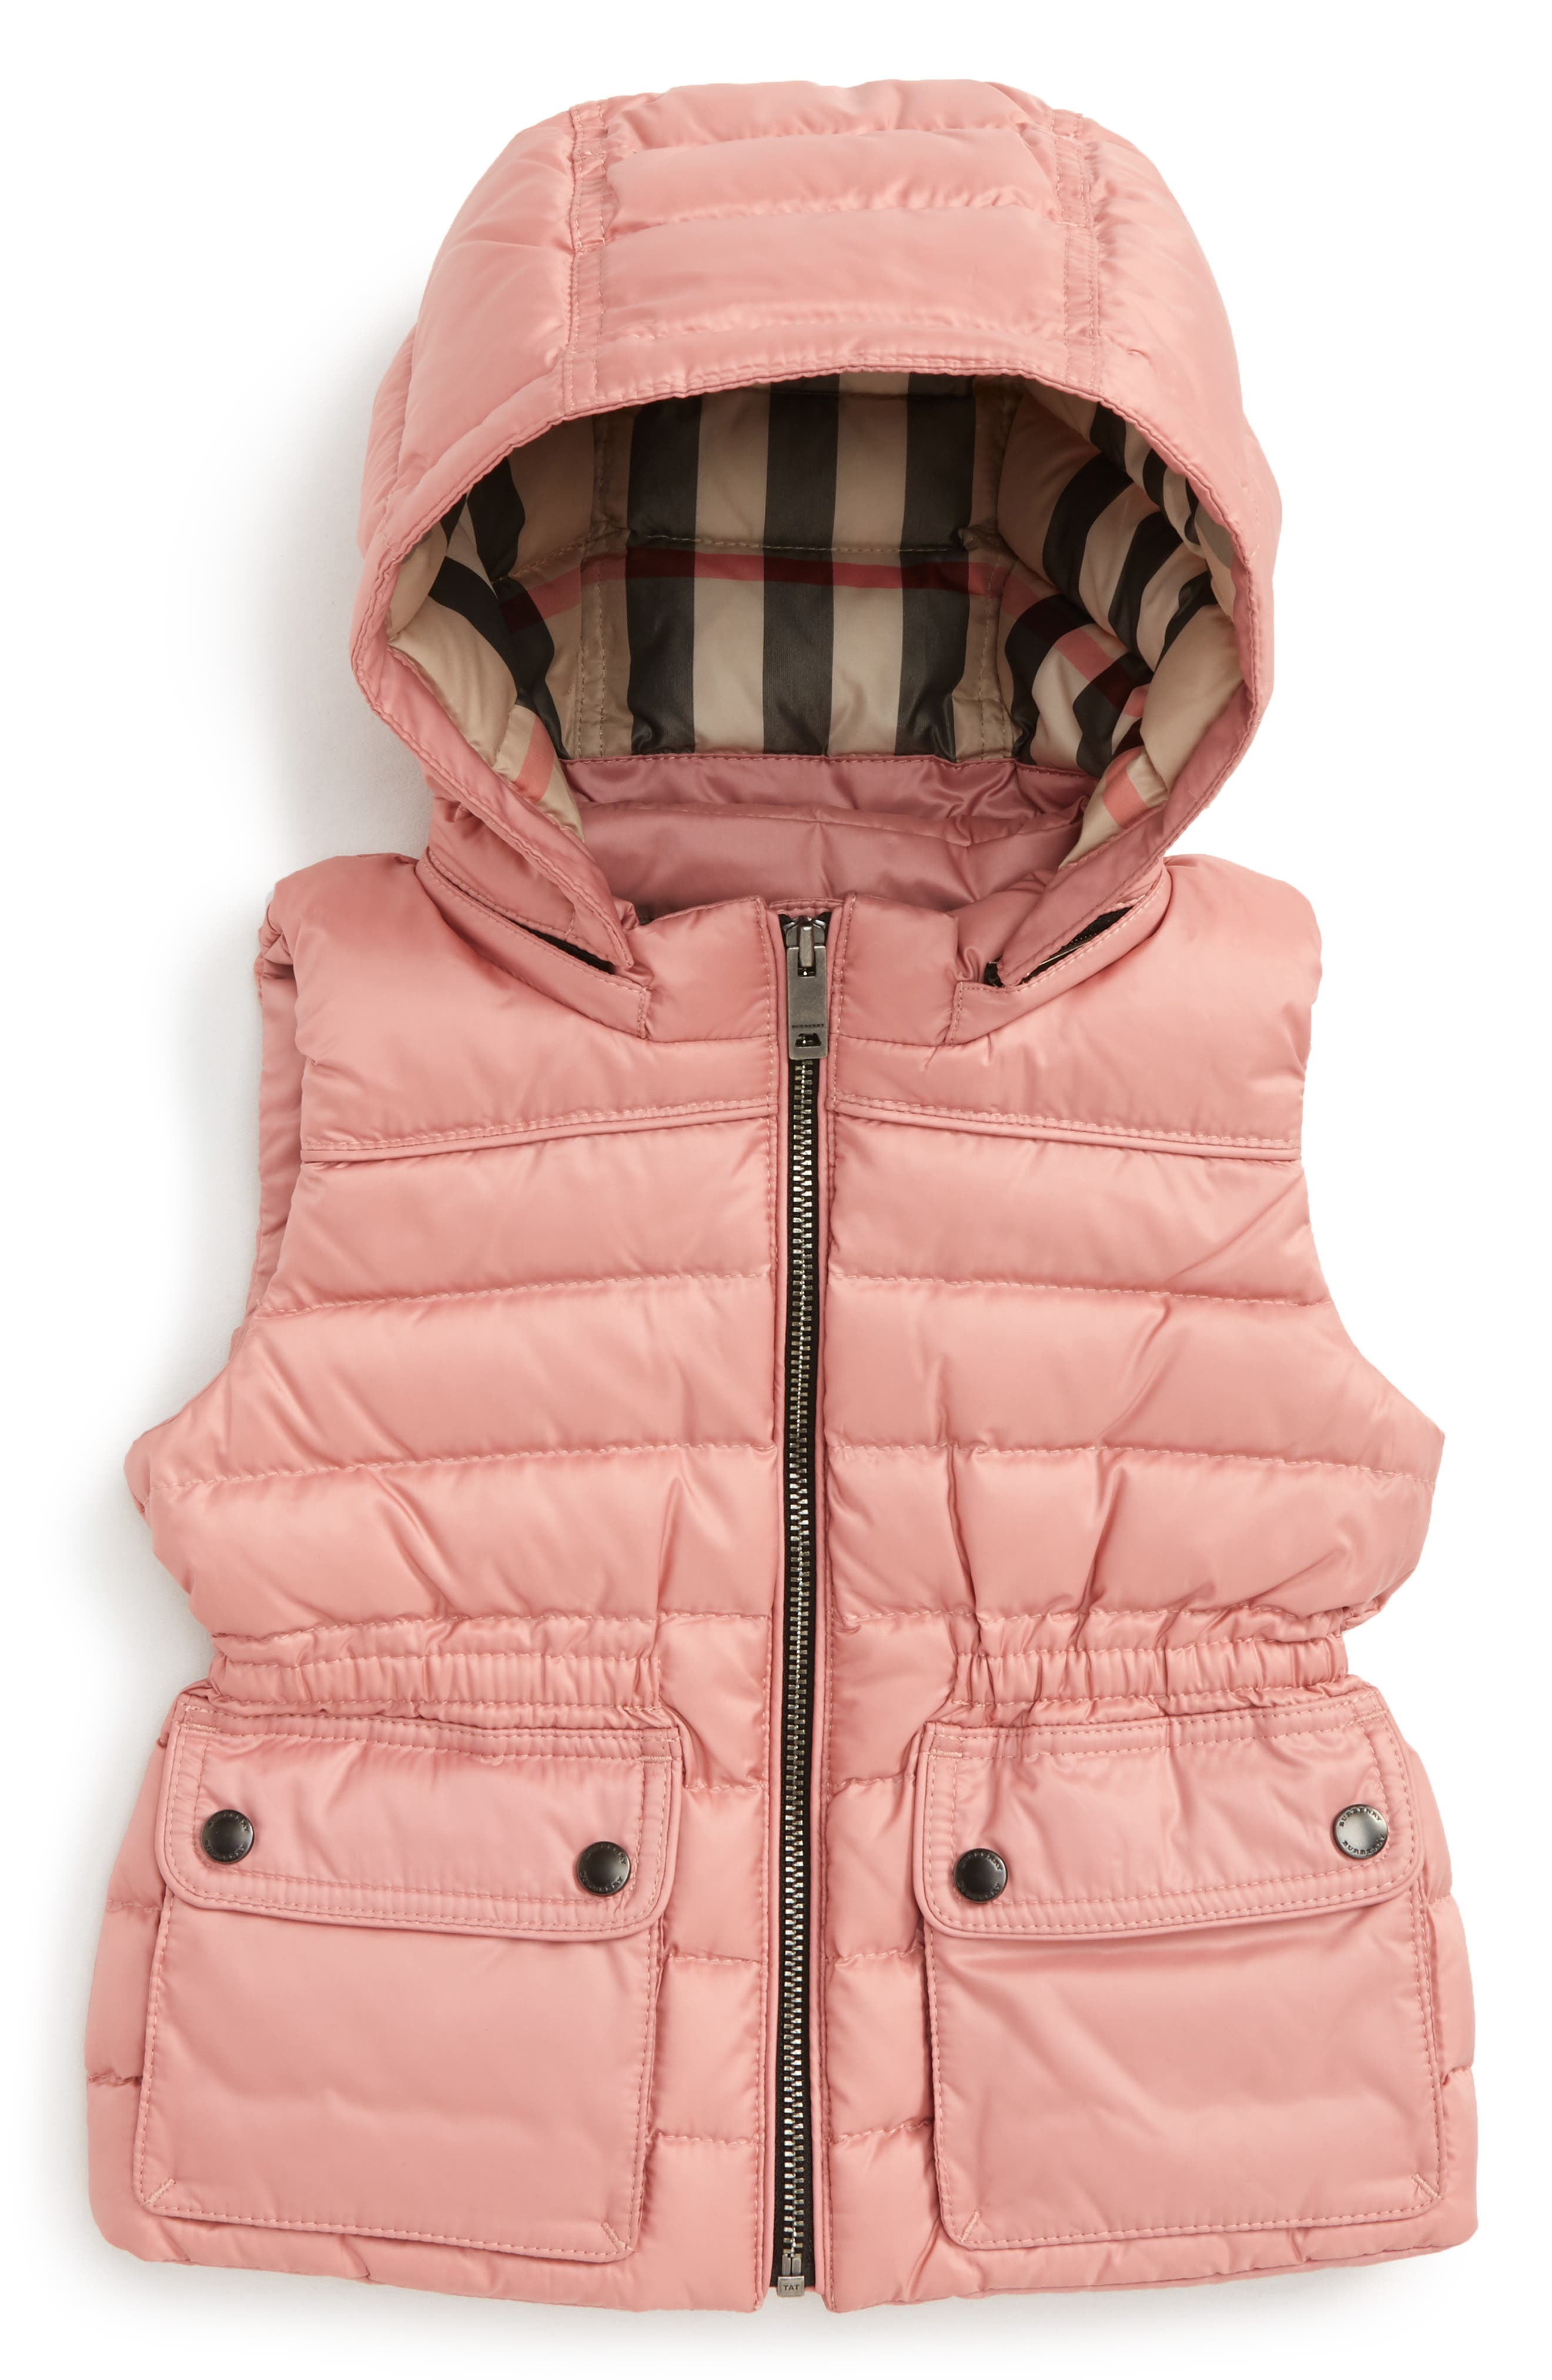 Burberry Maggie Hooded Vest (Toddler Girls, Little Girls & Big Girls)